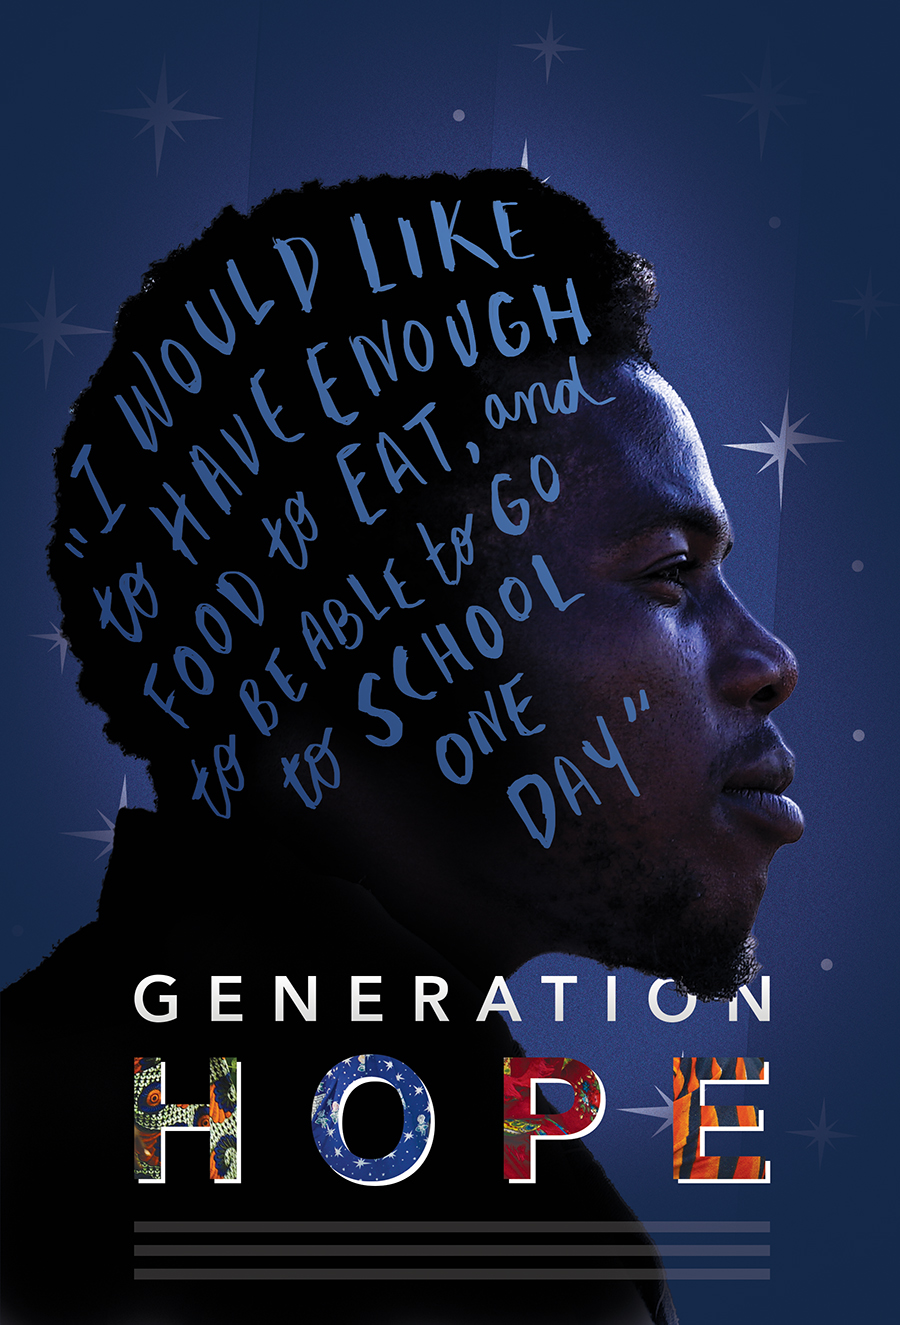 Concept Poster for Generation Hope